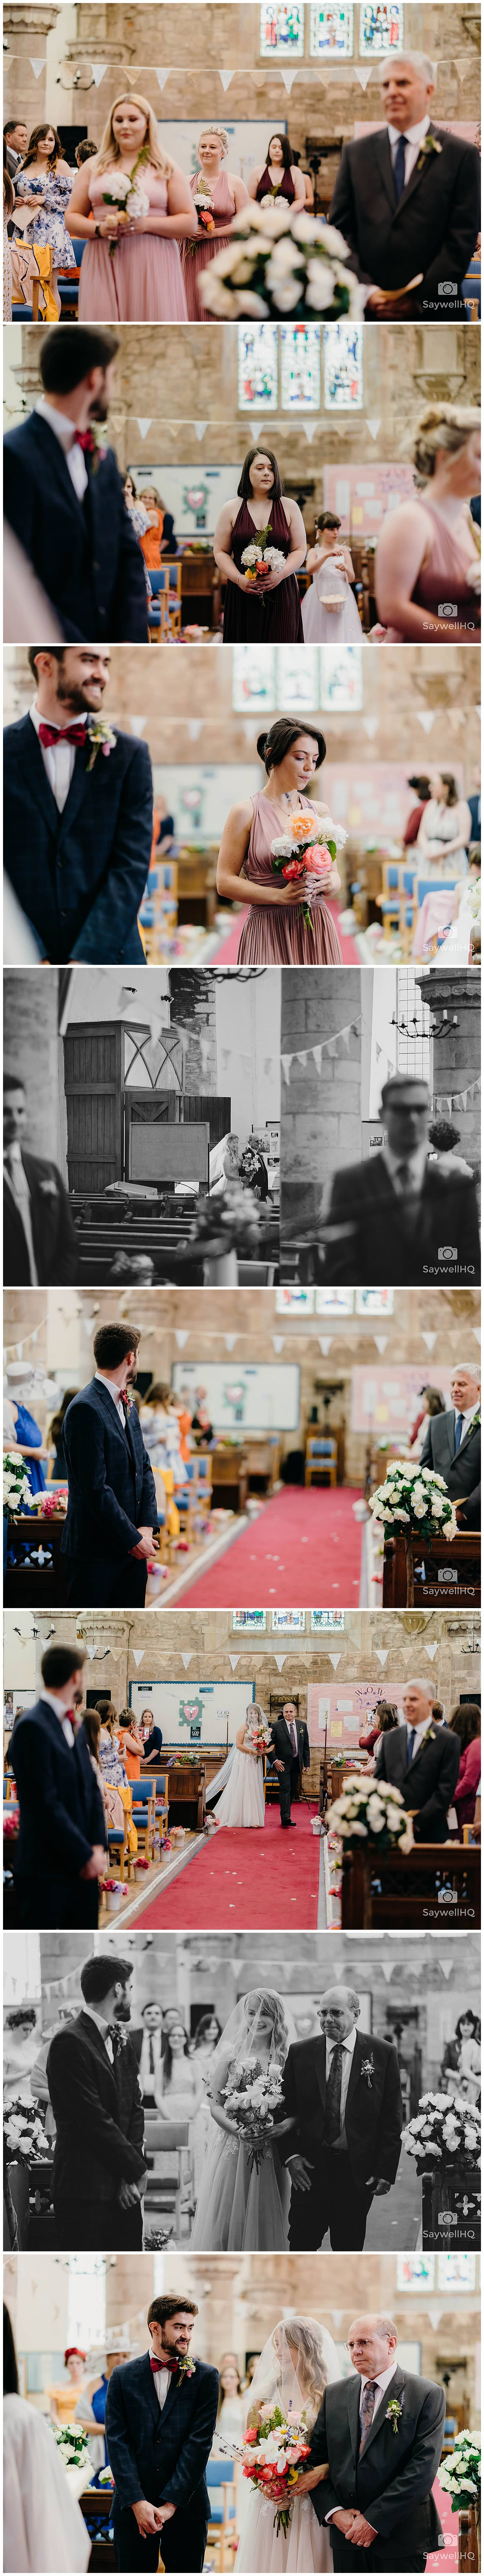 bride and the father of the bride walking down the aisle arm in arm at her wedding at St Peters Church in Bromyard Herefordshire